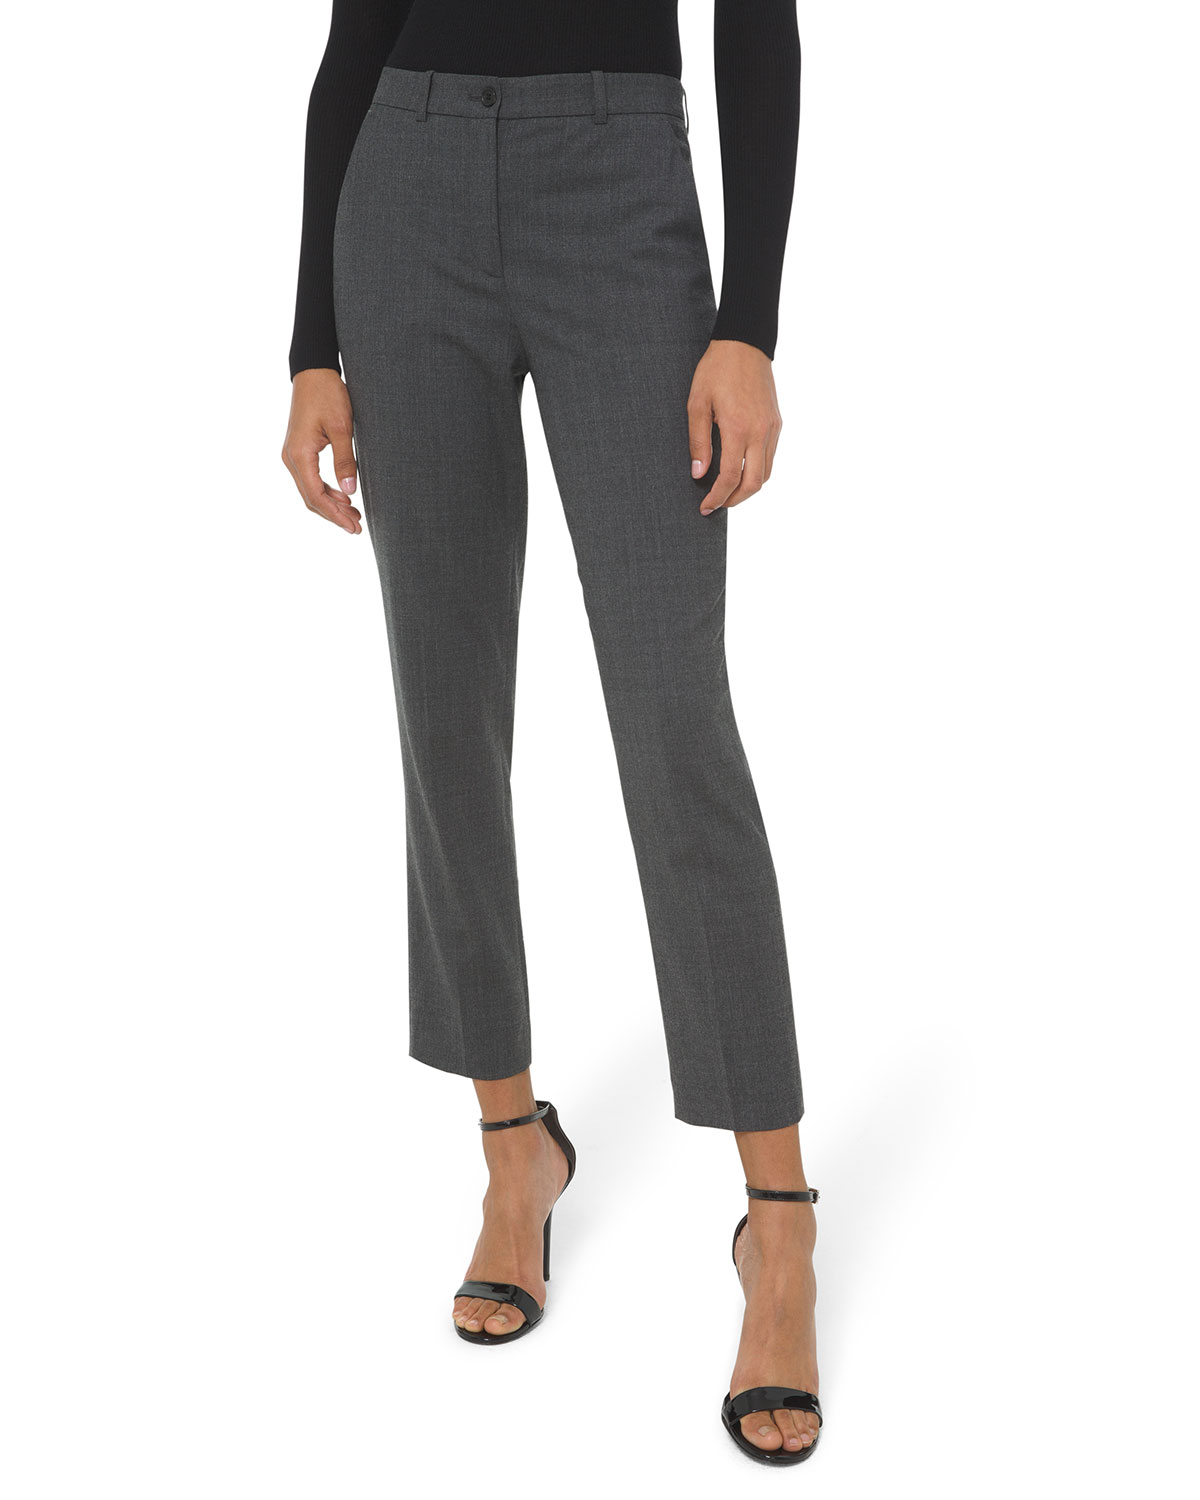 Michael Kors Collection Samantha Cropped Stretch Wool Pants